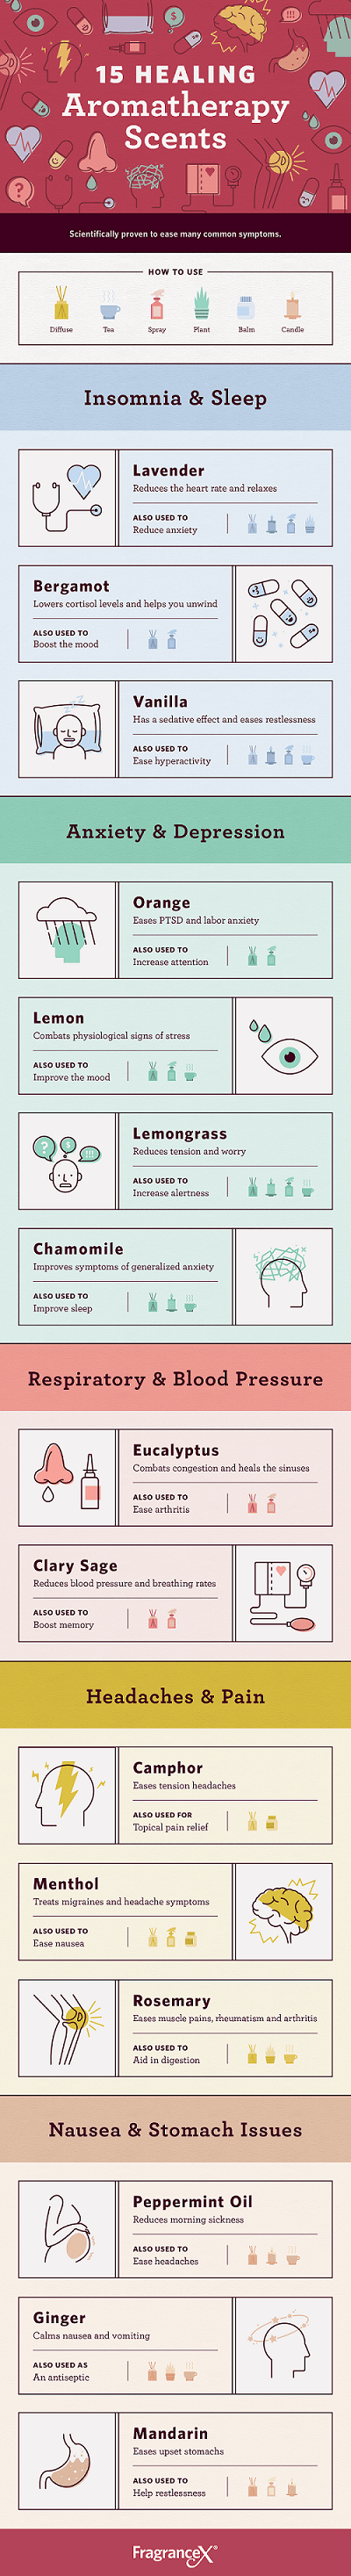 15 aromatherapy scents